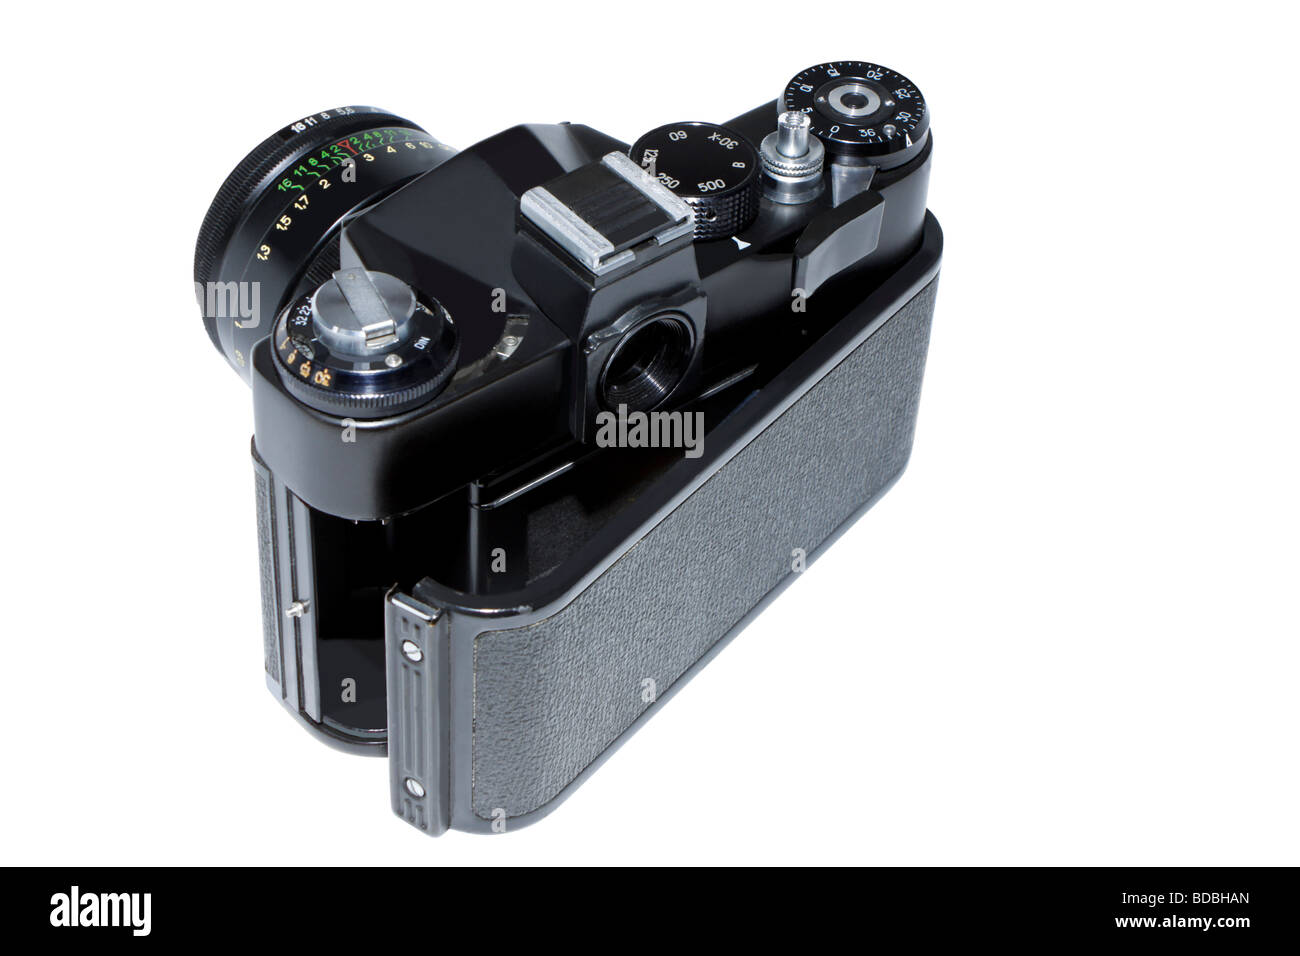 the old mirror film camera - the reliable friend of photographers 20 years ago Stock Photo